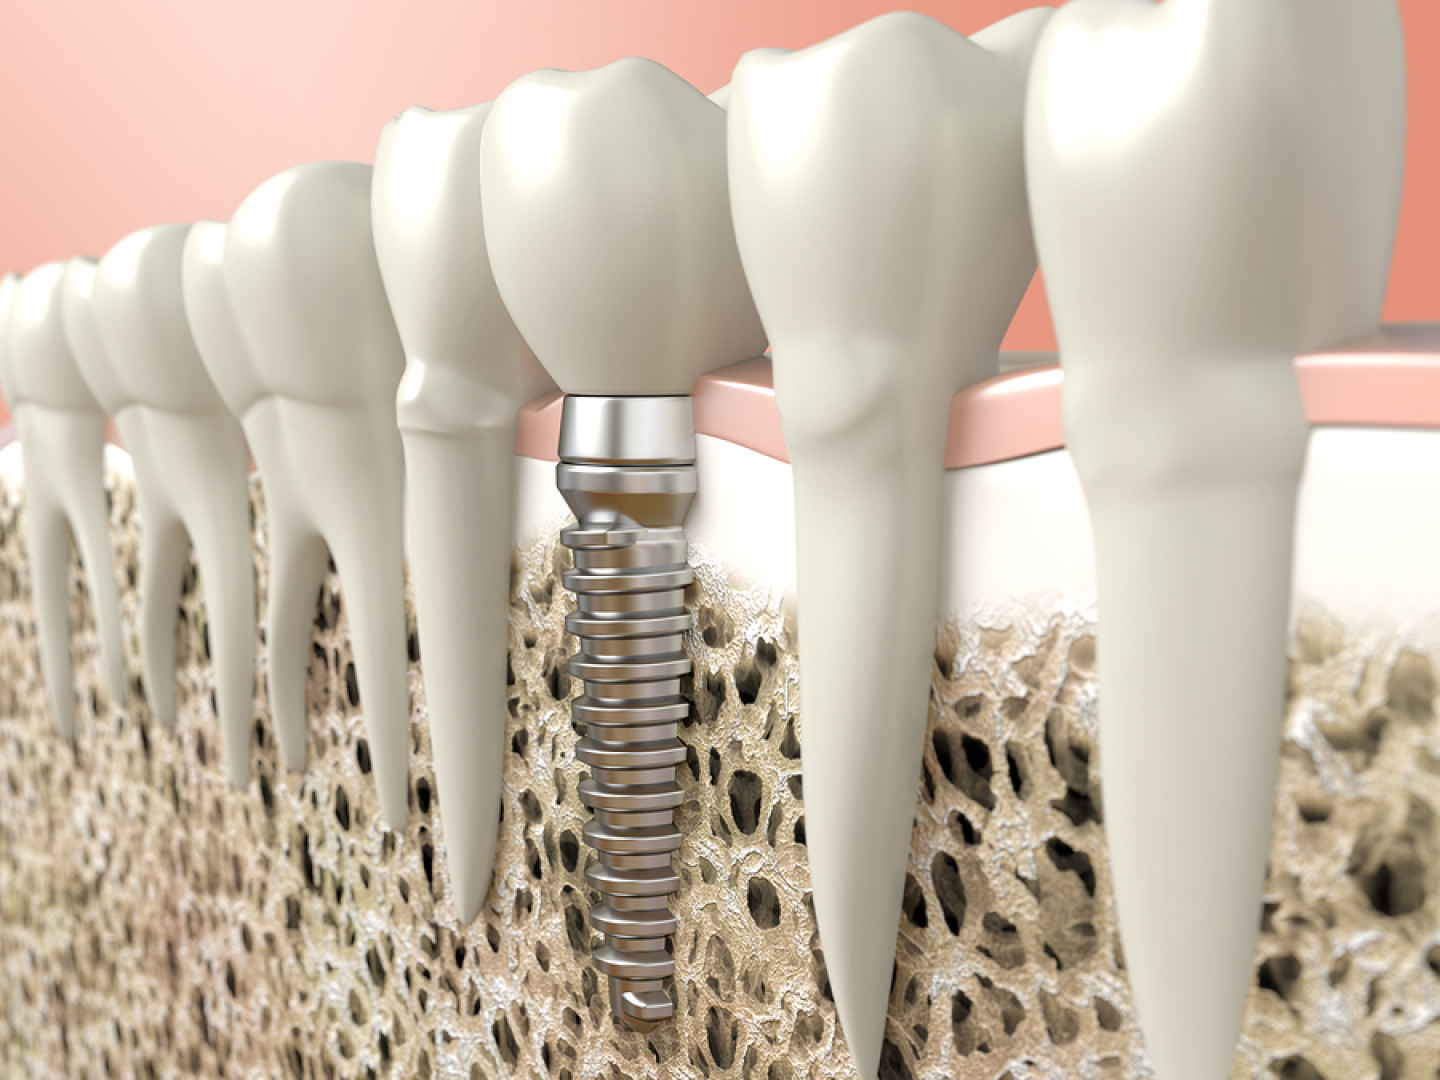 With Dental Implants From Idaho Oral & Maxillofacial Surgery...